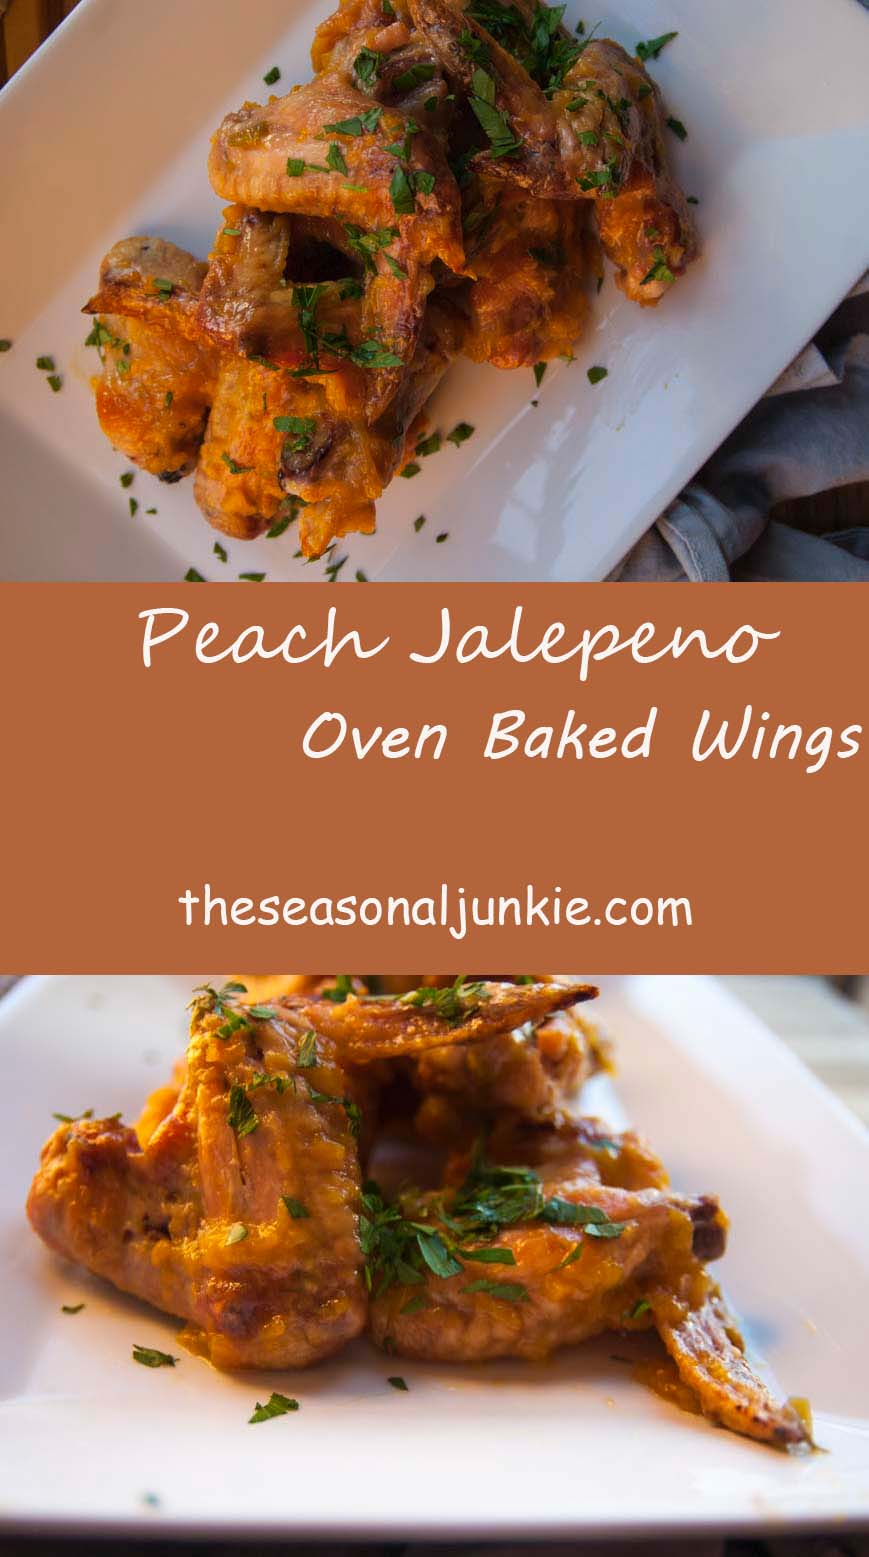 Peach Jalepeno Oven Baked Wings-The Seasonal Junkie